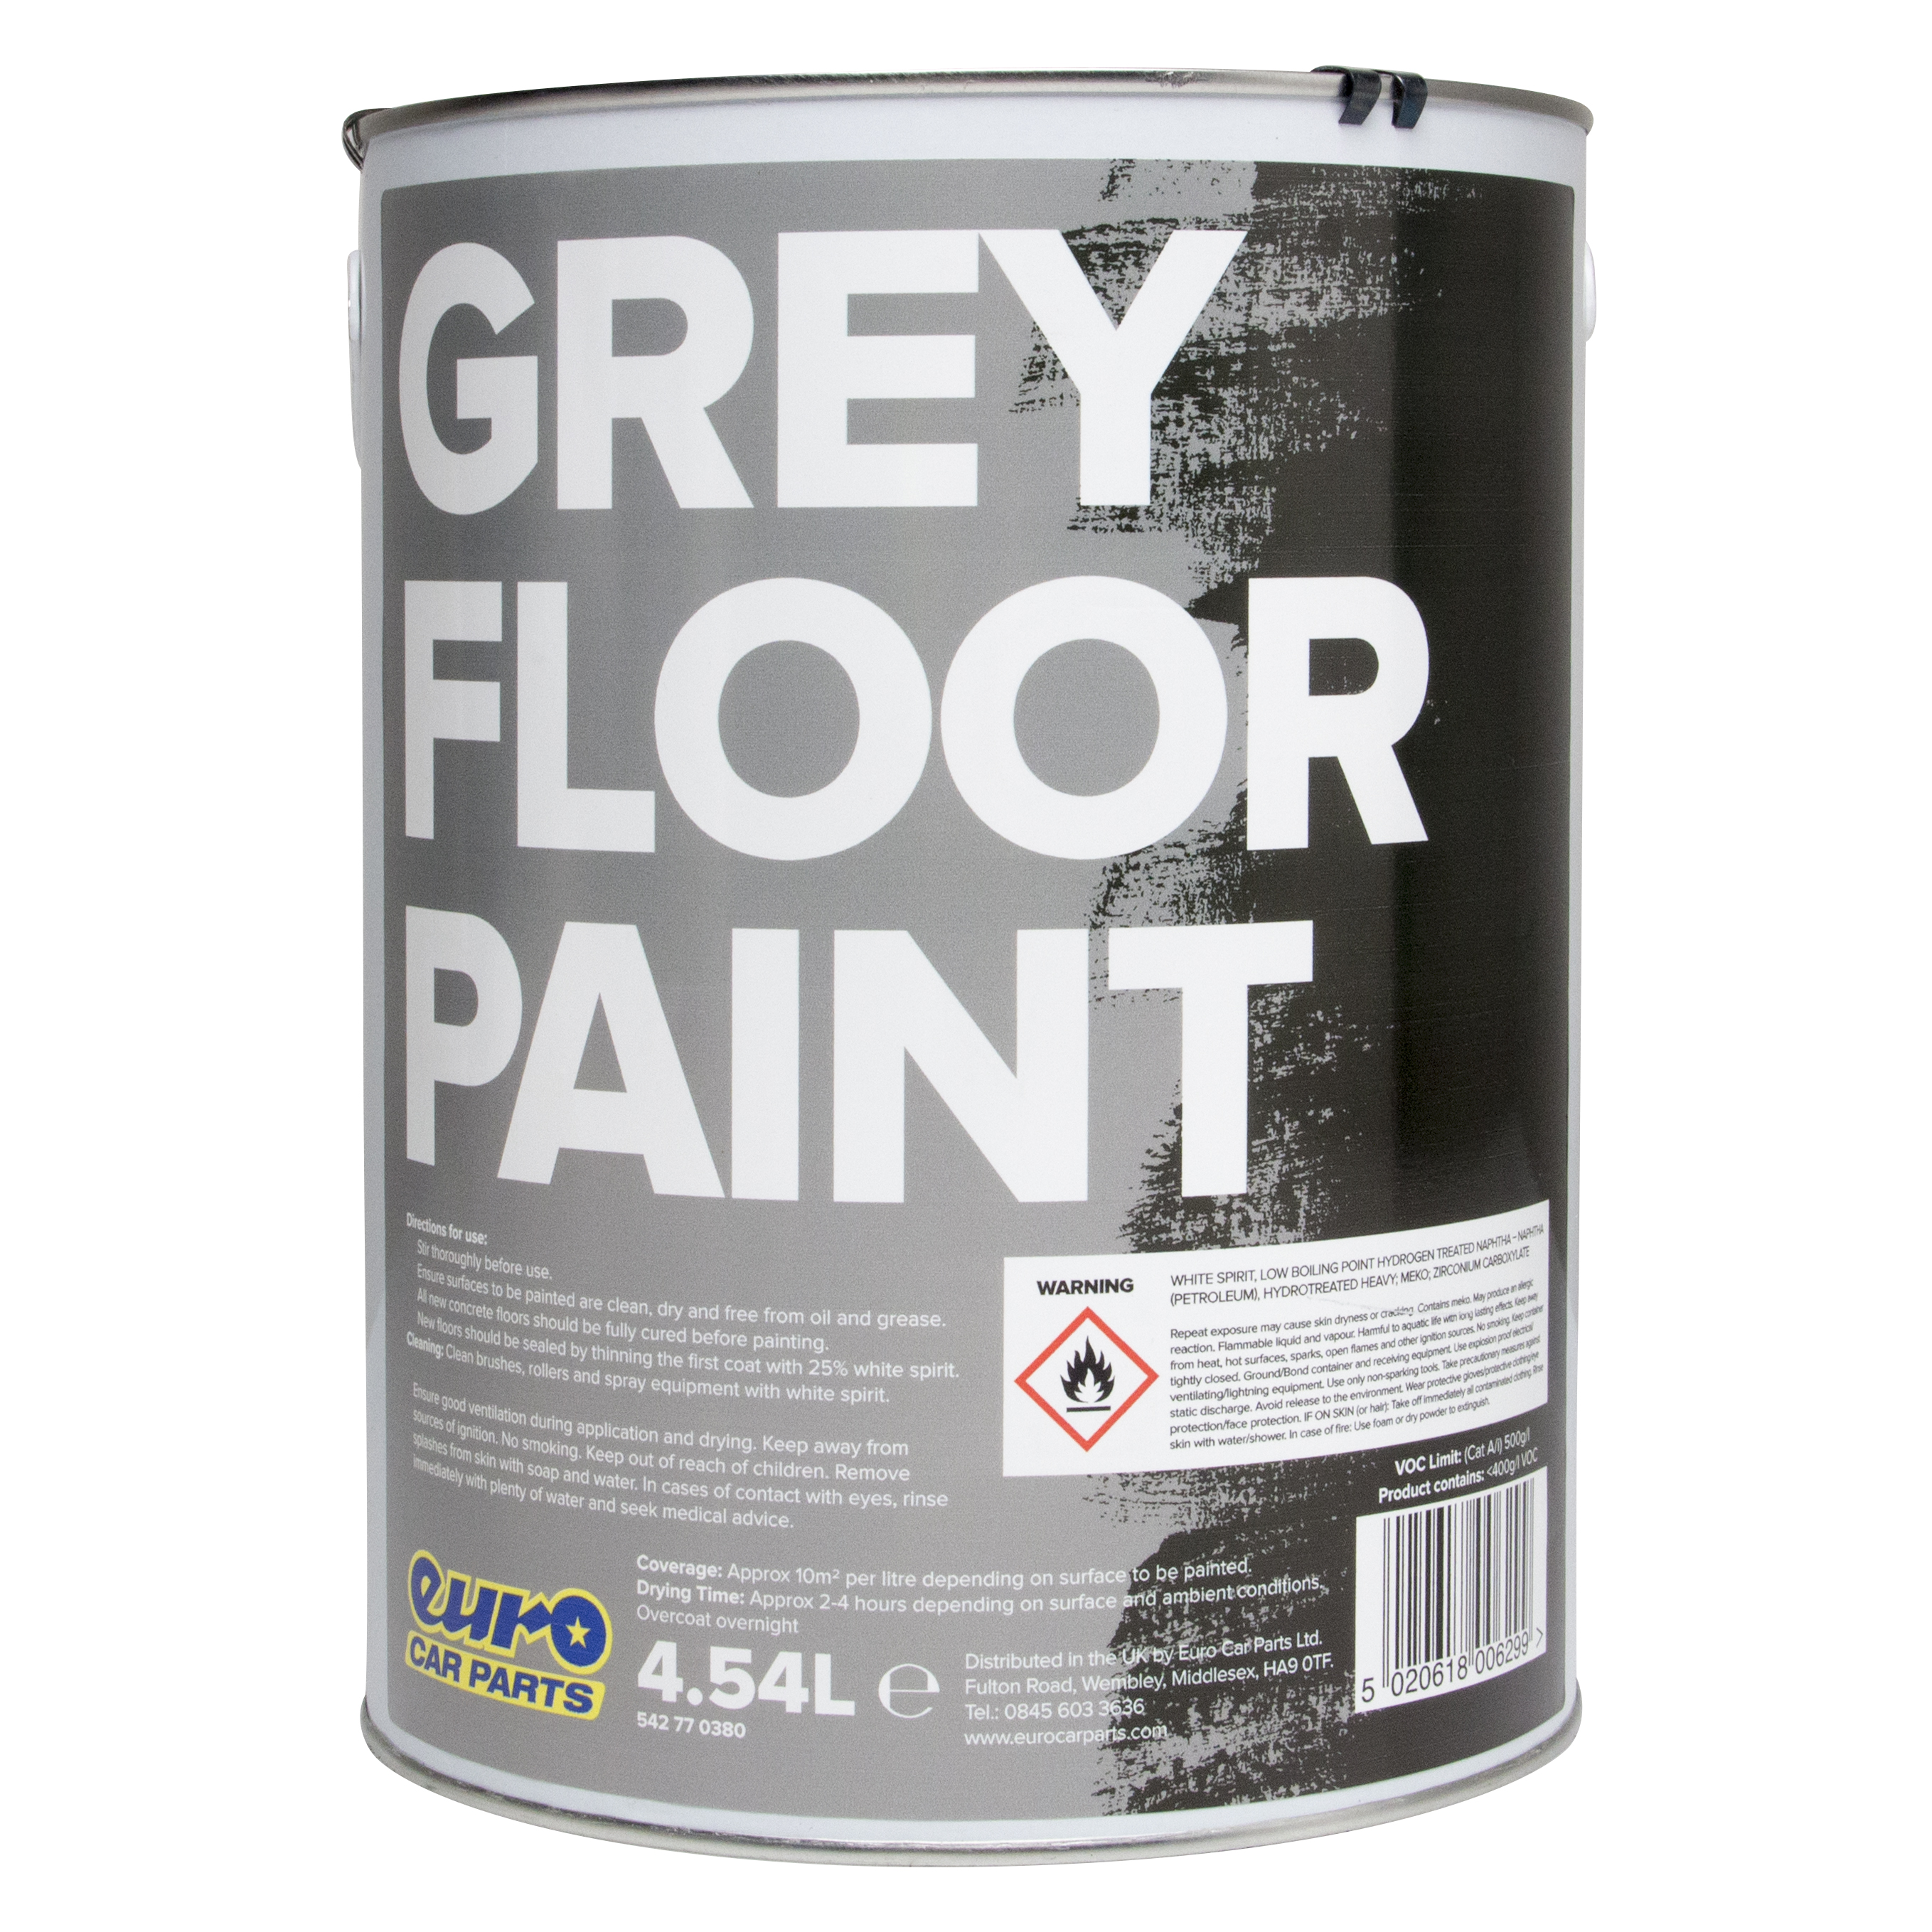 Eurocarparts Floor Paint Grey 4 5l Solvent Based 0629 Ebay